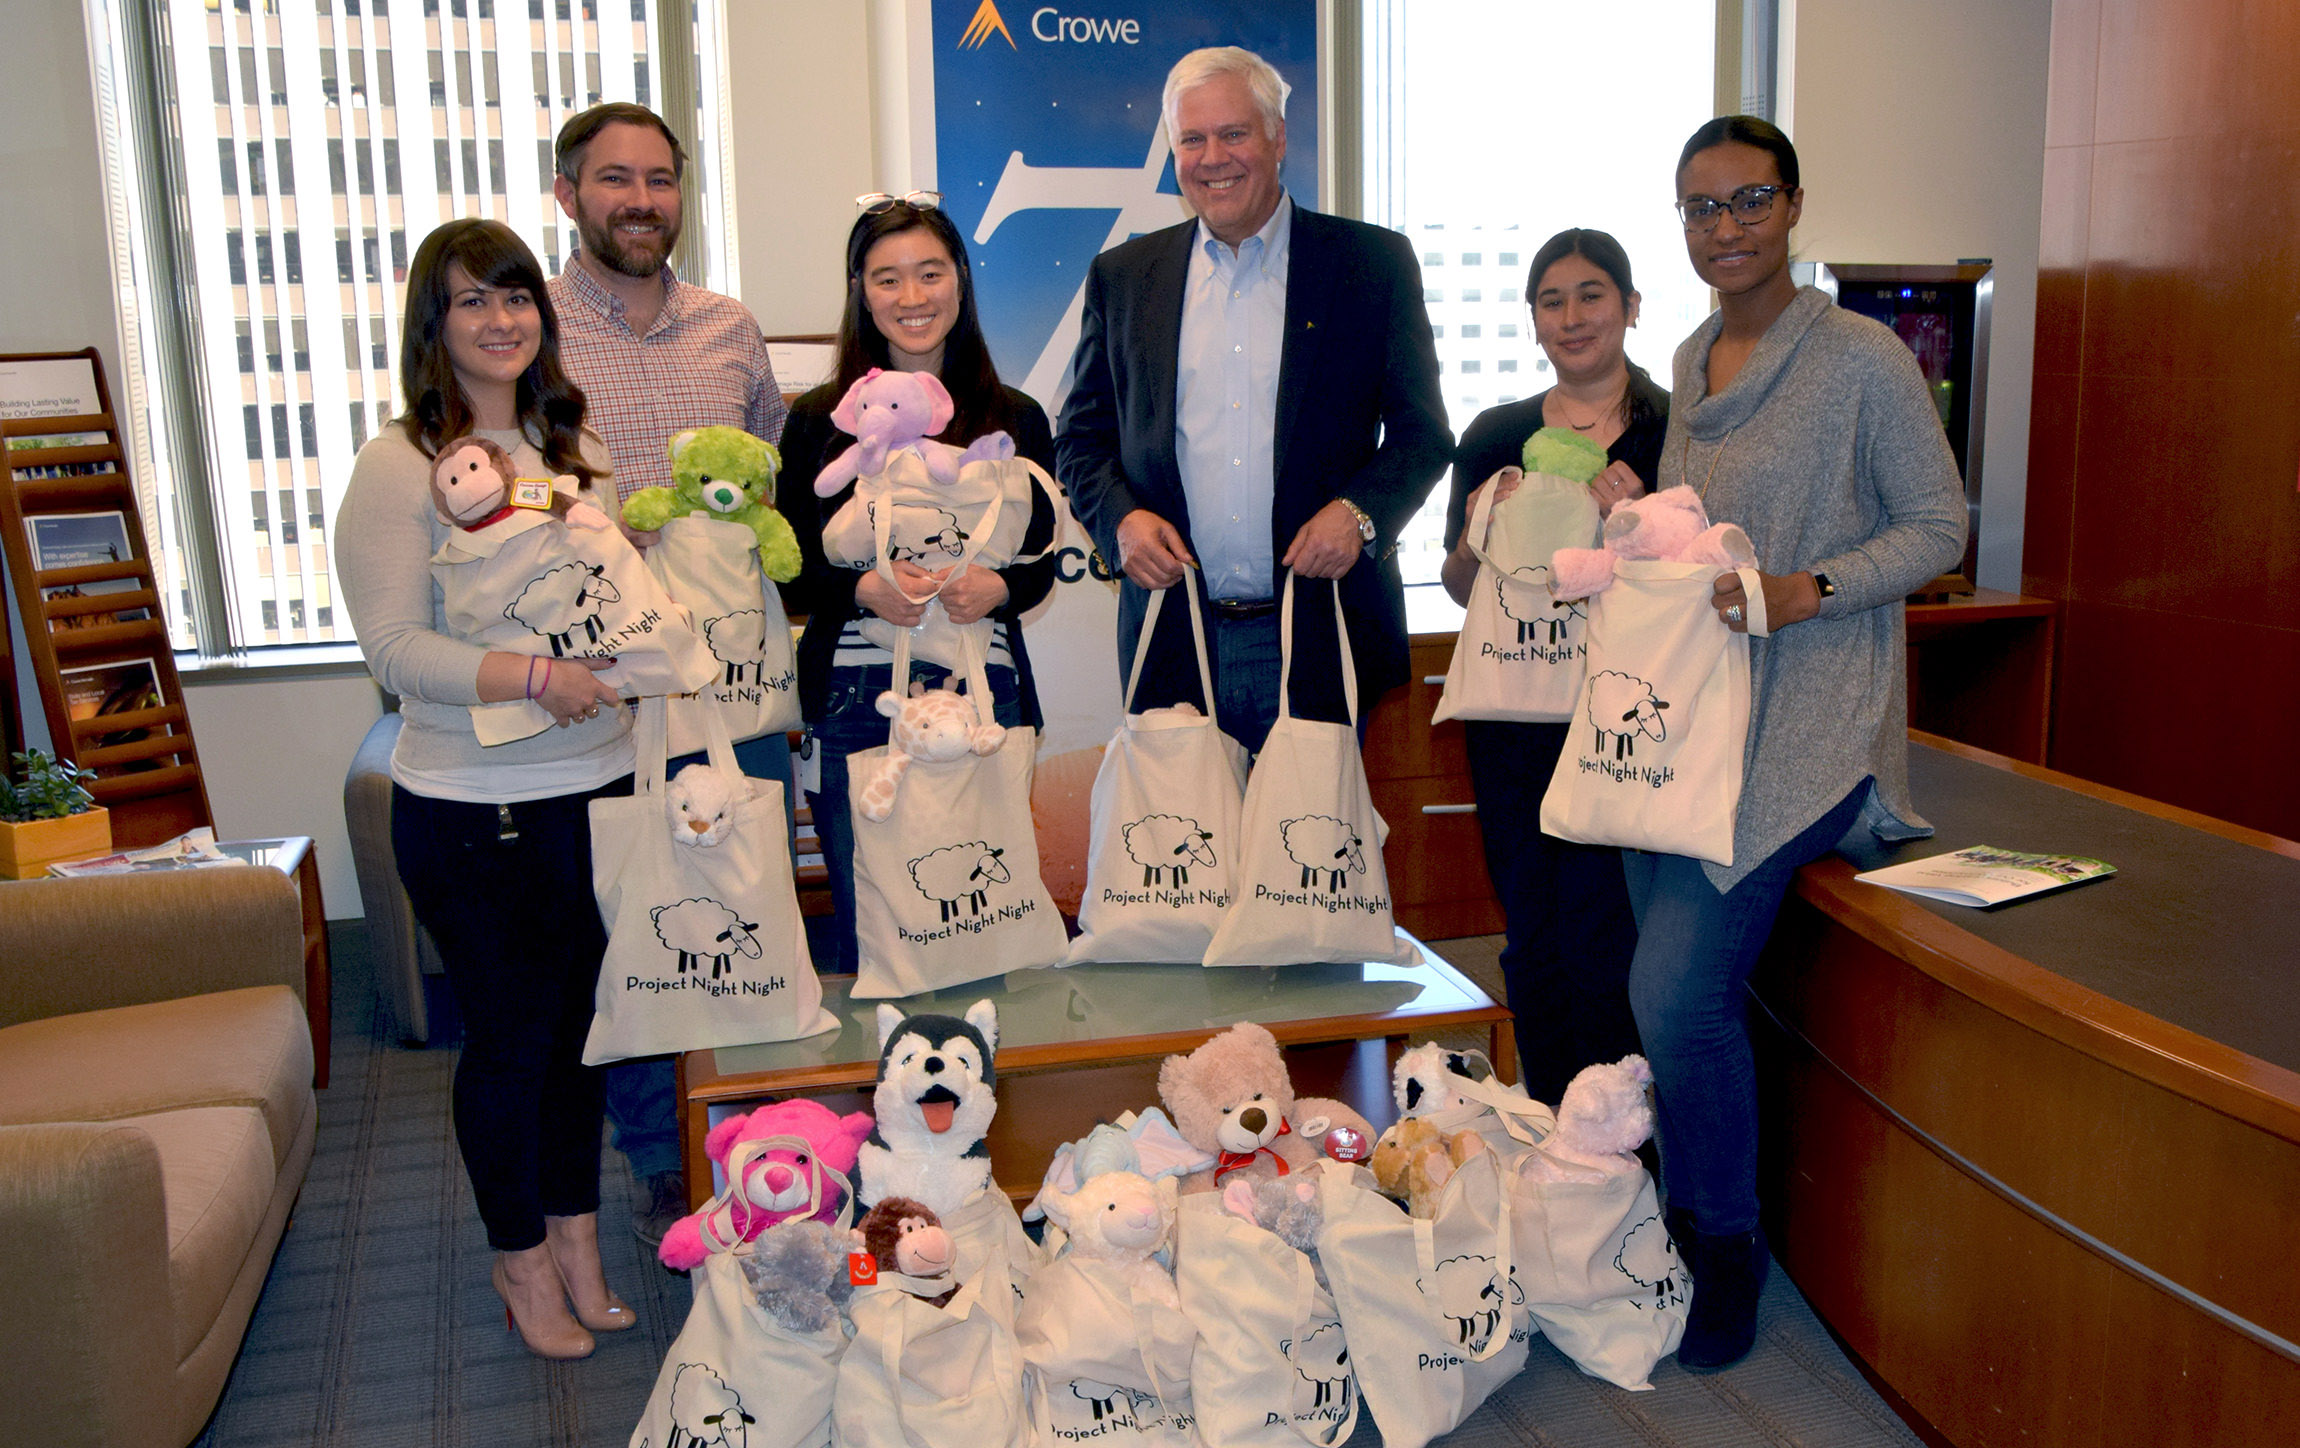 Crowe CEO Jim Powers joins volunteers from the firm's San Francisco office in preparing packages for Project Night Night.